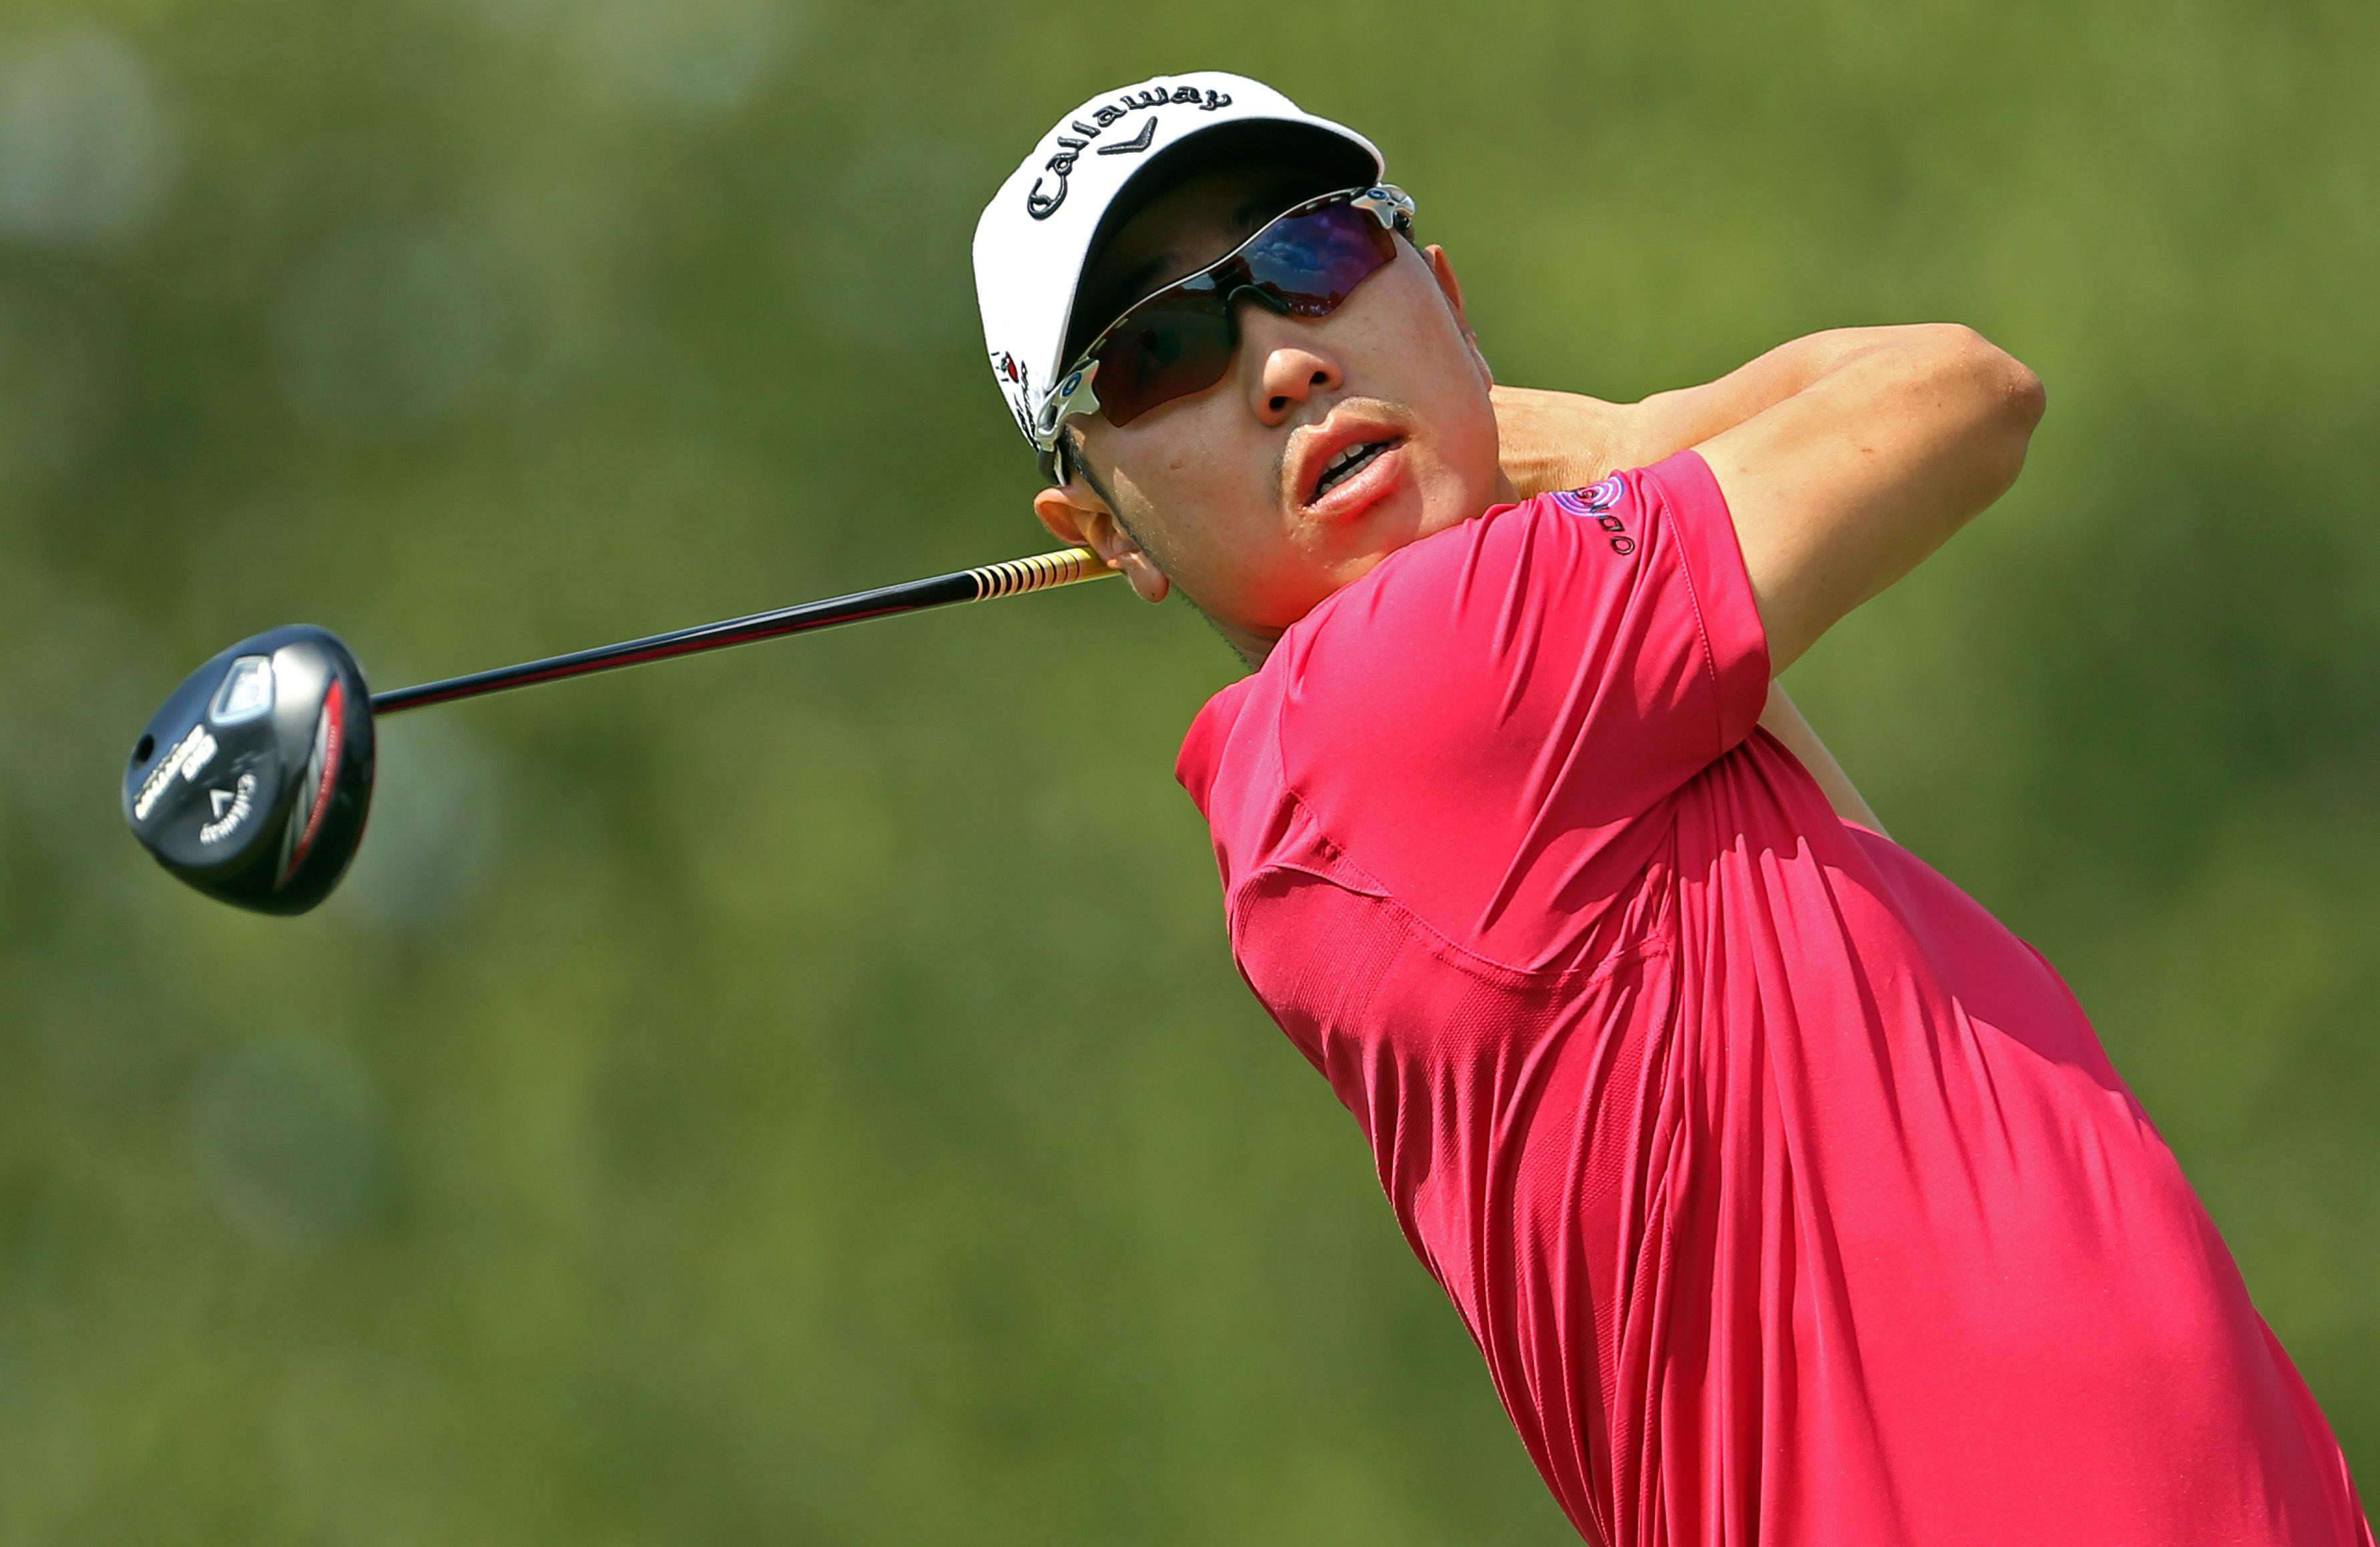 Bae tied for lead at Barclays as military service looms